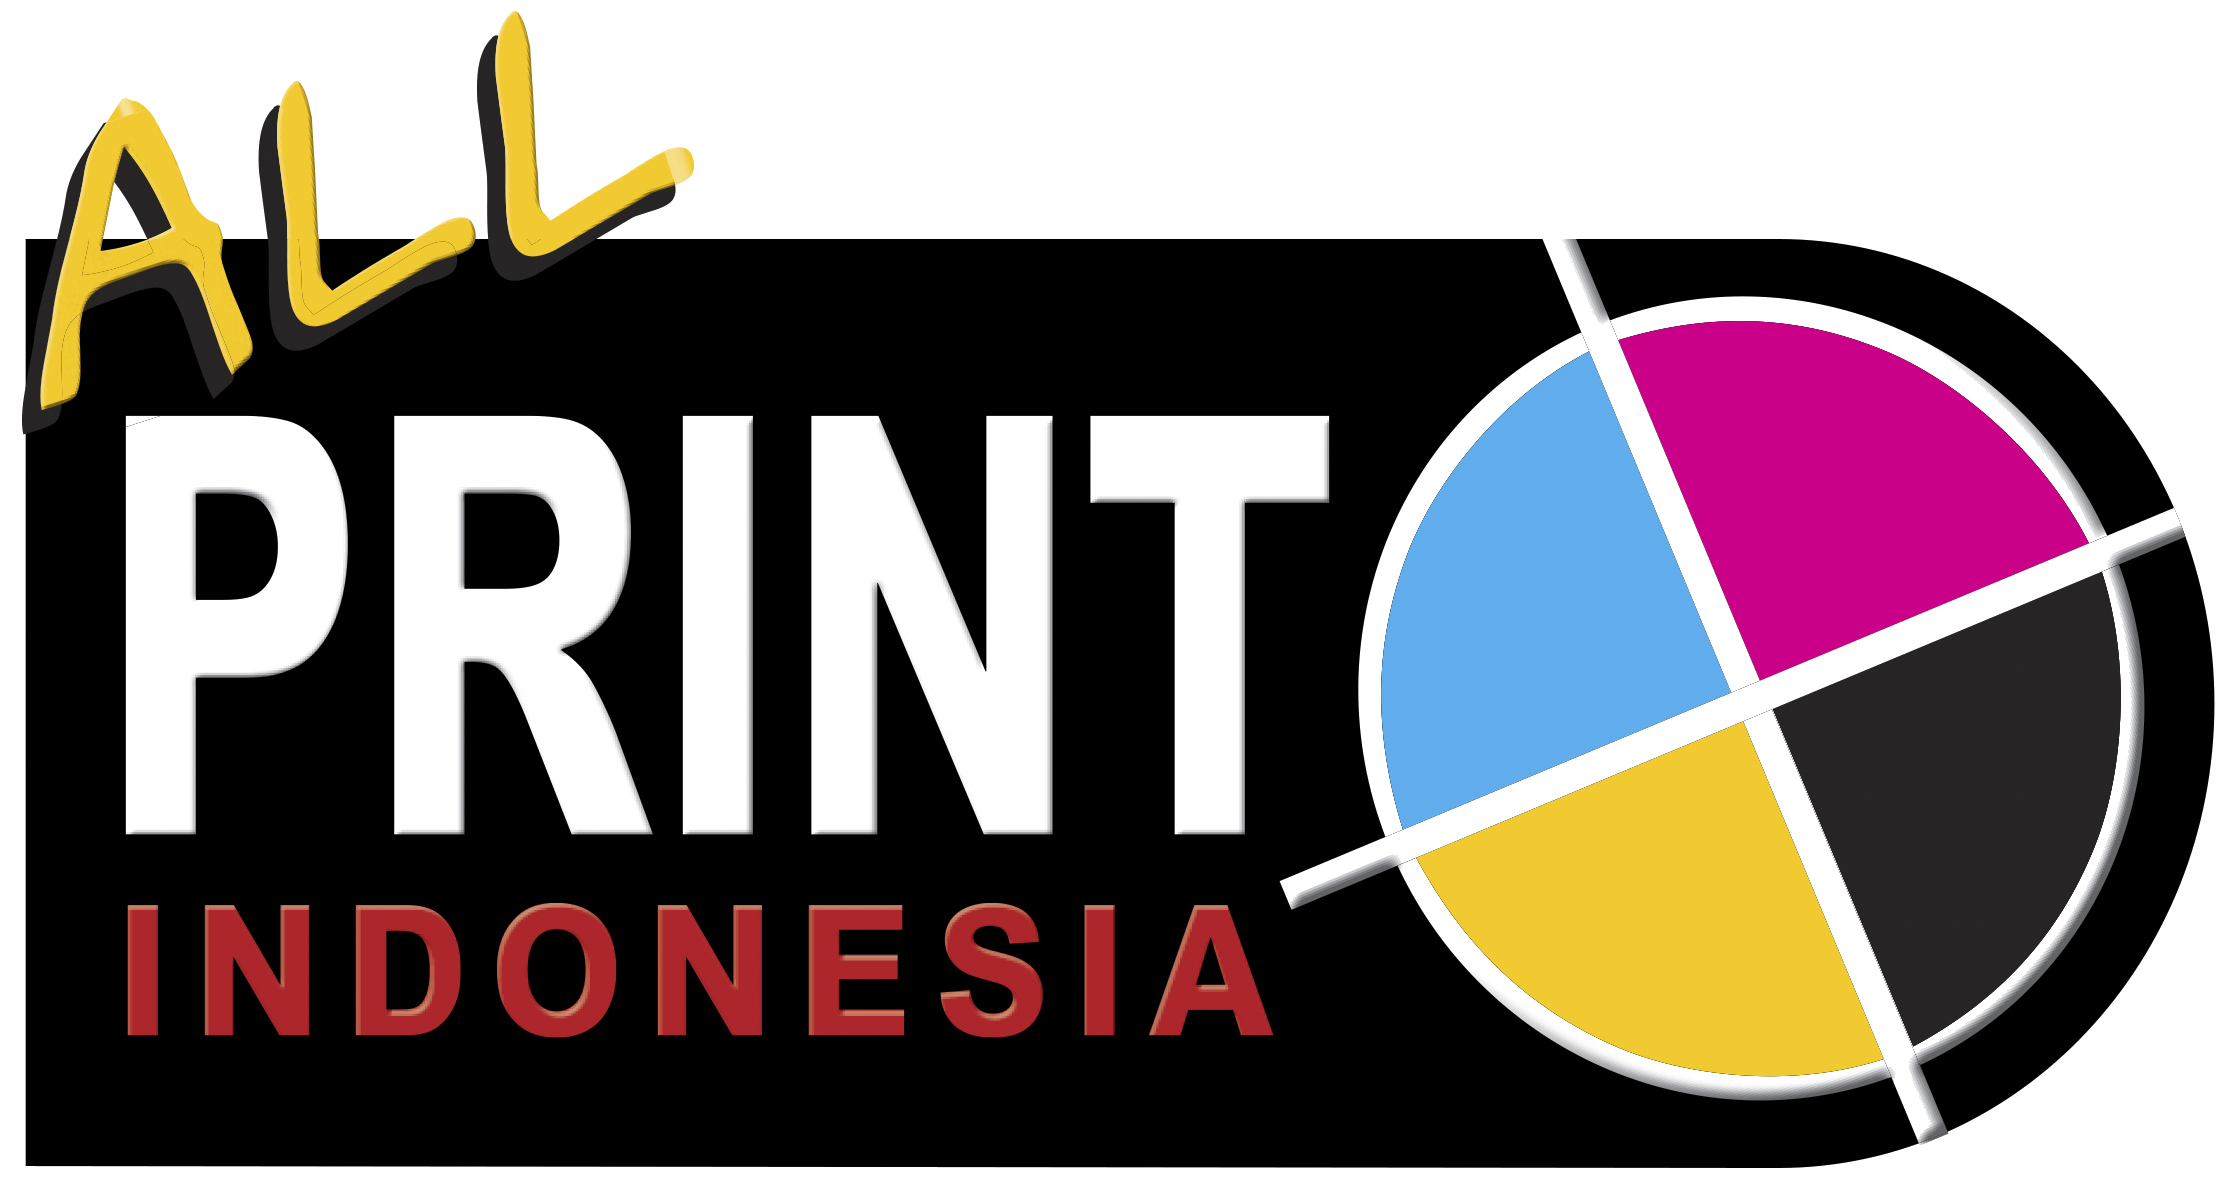 Allprint Indonesia 2020